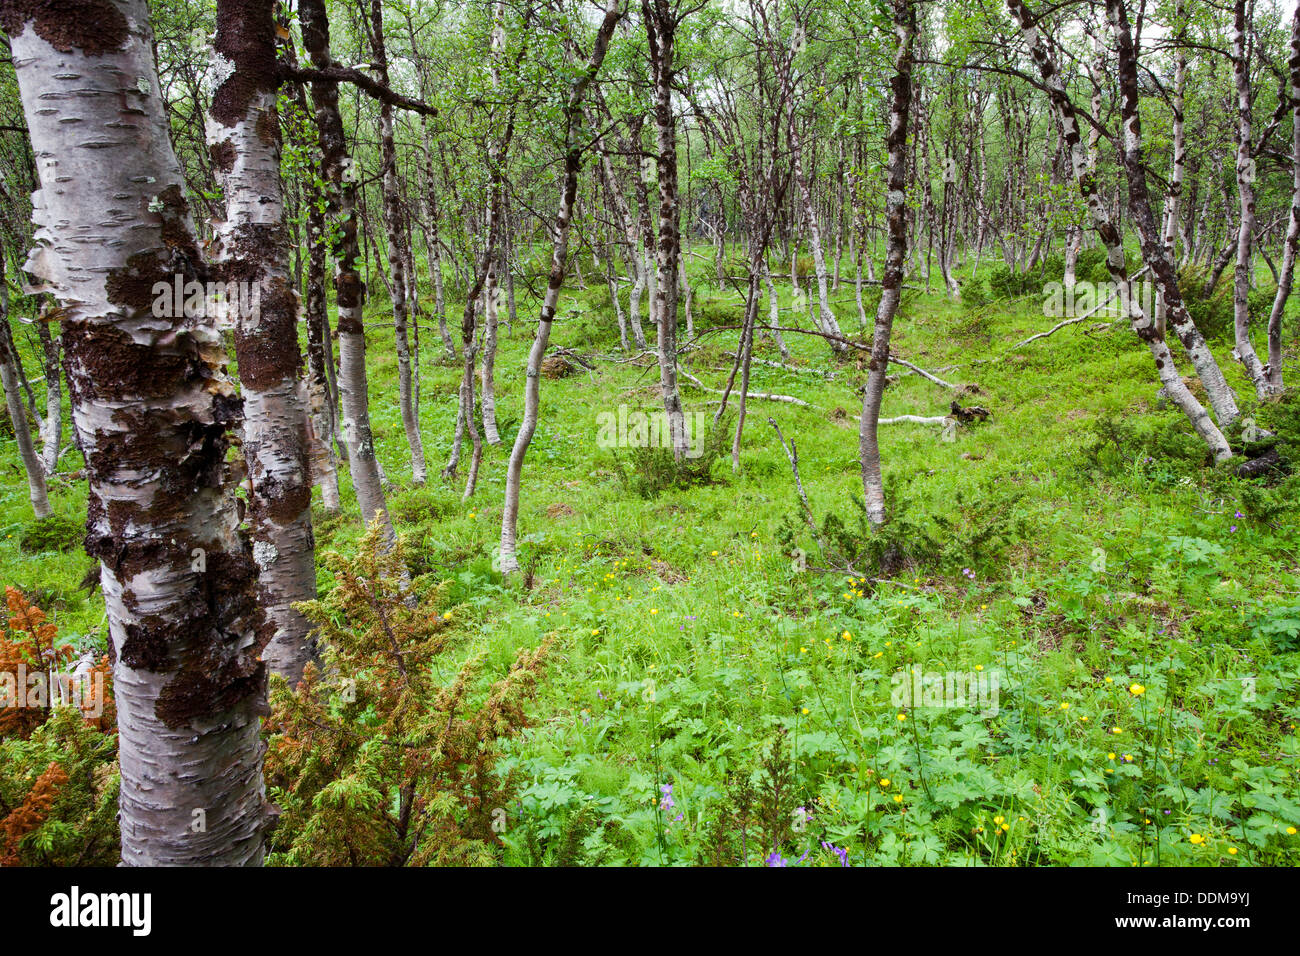 Boreal birch forest from Kilpisjärvi, Finland - Stock Image